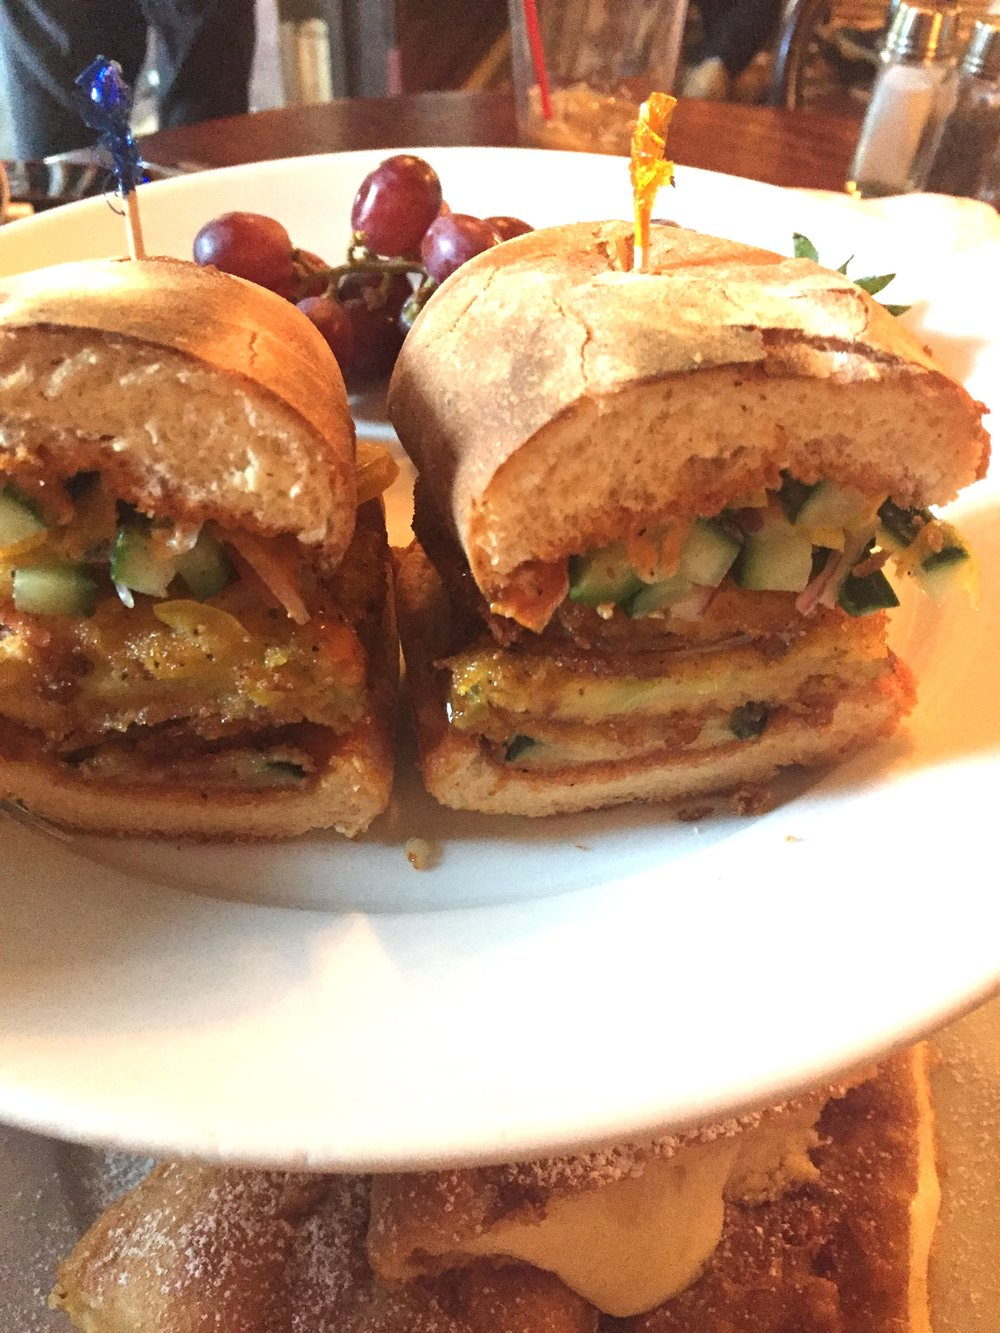 The fried green tomato sandwich at Cafe Orleans. Too much bread and not enough flavor.